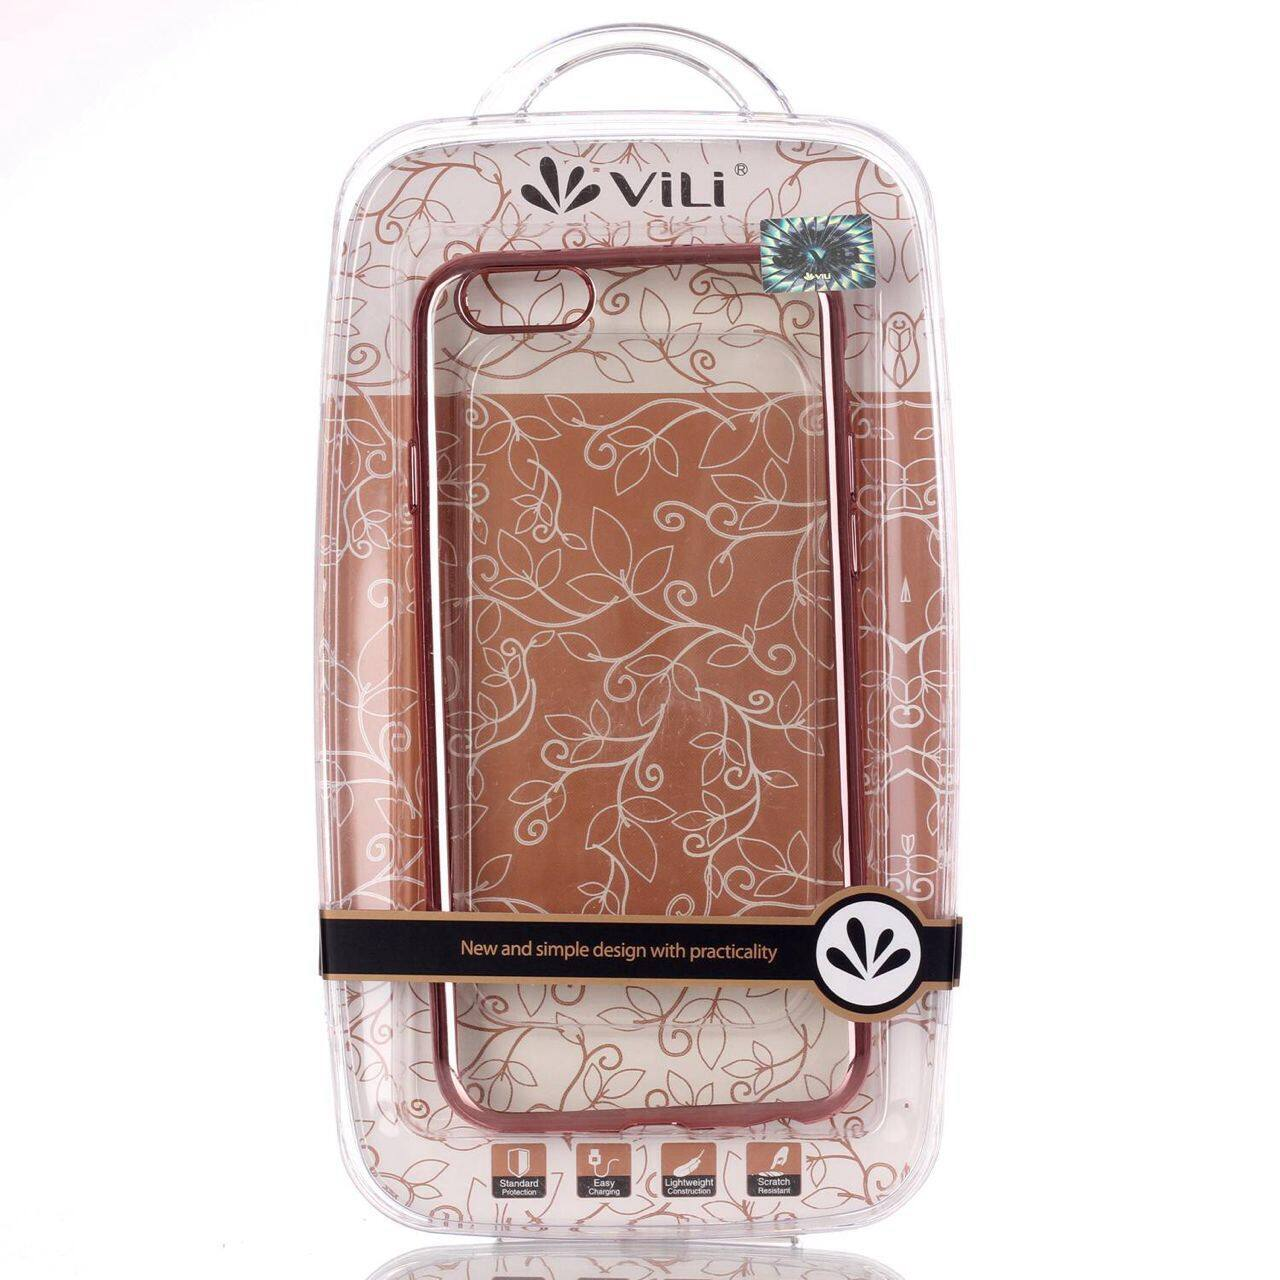 ViLi Apple iPhone 7 TPU Silicone Ultra thin Luxury Slim Electroplating Crystal Clear Transparent Soft Back Cover Case Covers (Rose Gold) **Free x1 Tempered Glass Worth Rm 39**